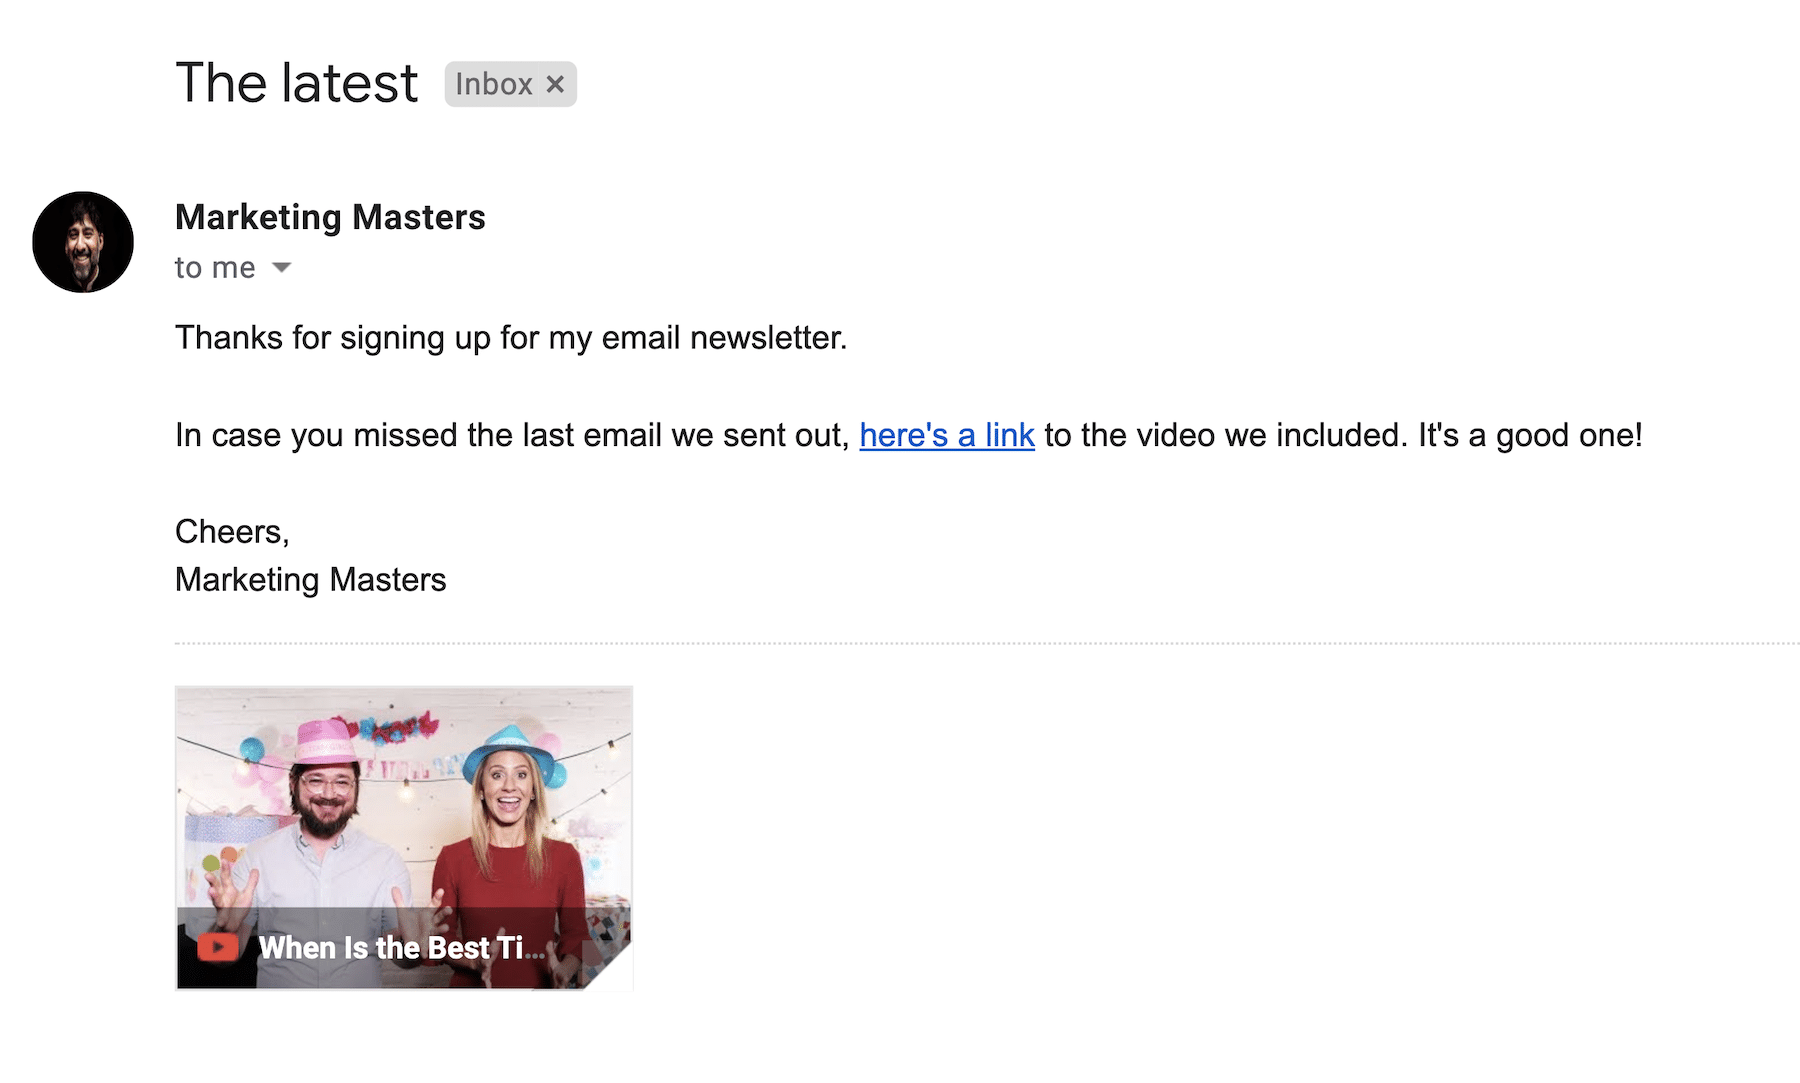 an email with a youtube link can show a youtube video in the inbox if opened in gmail